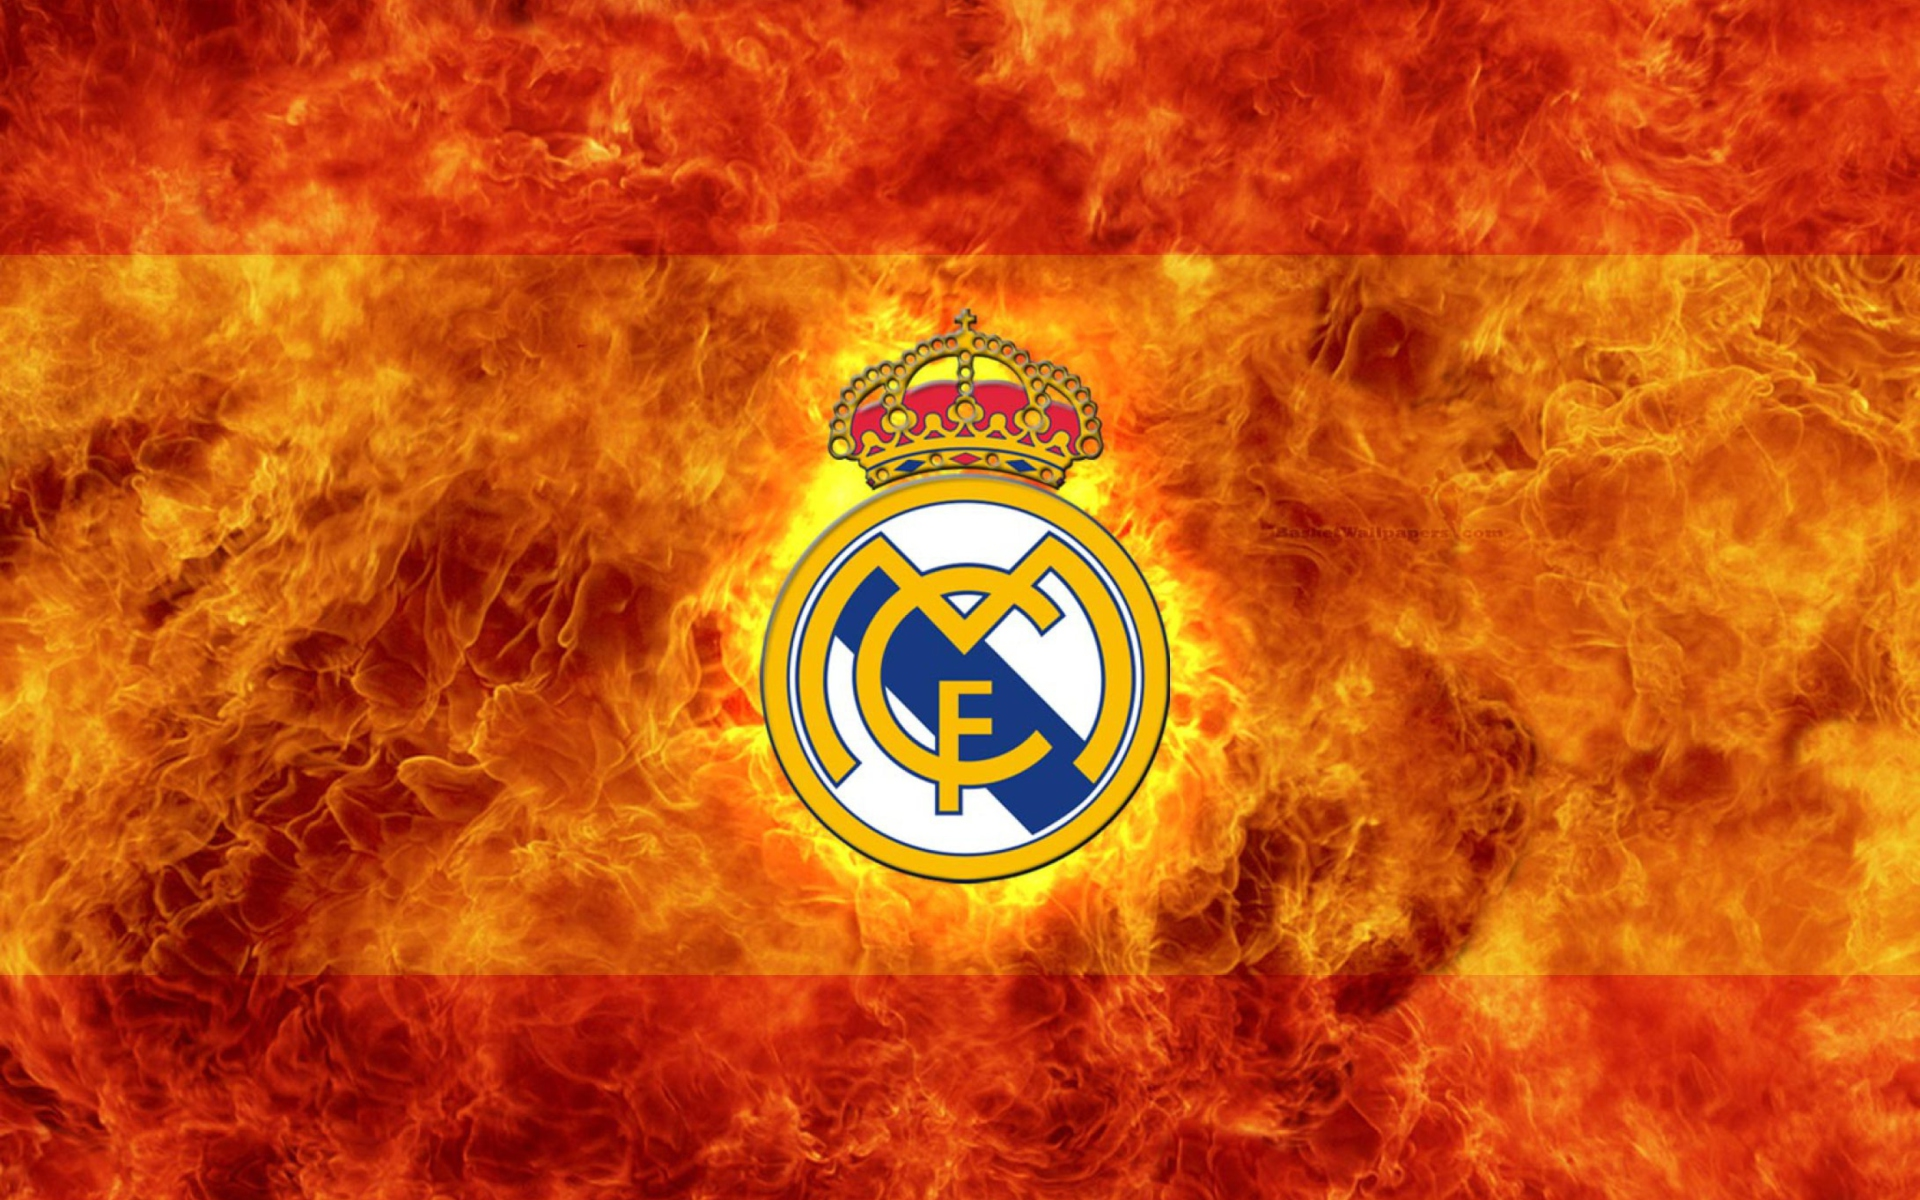 Fondos de pantalla del real madrid wallpapers gratis for Imagenes fondo escritorio gratis